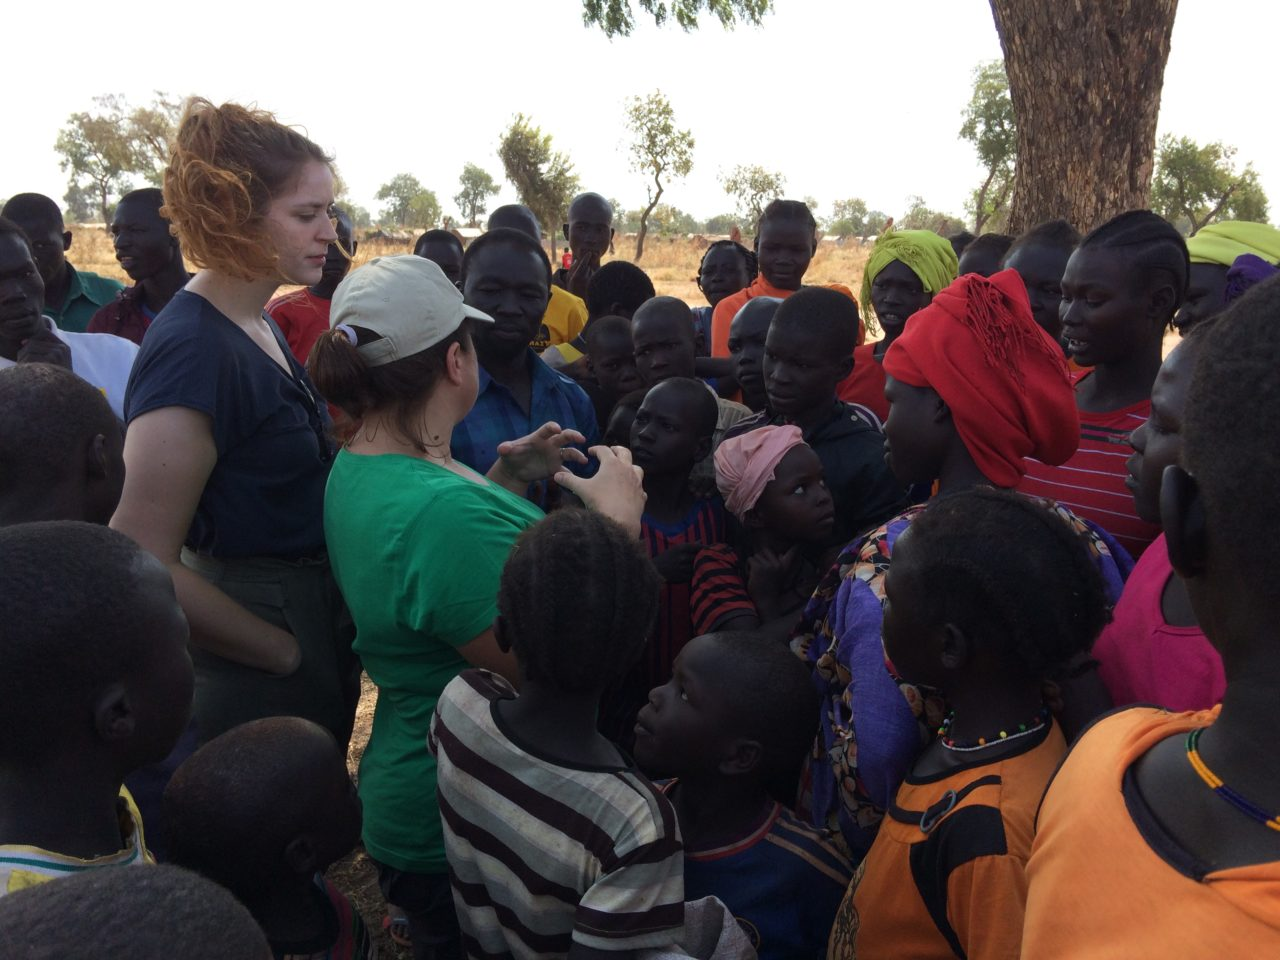 HMDT Blog: The forgotten victims of the Nuba Mountains - Sonja Miley